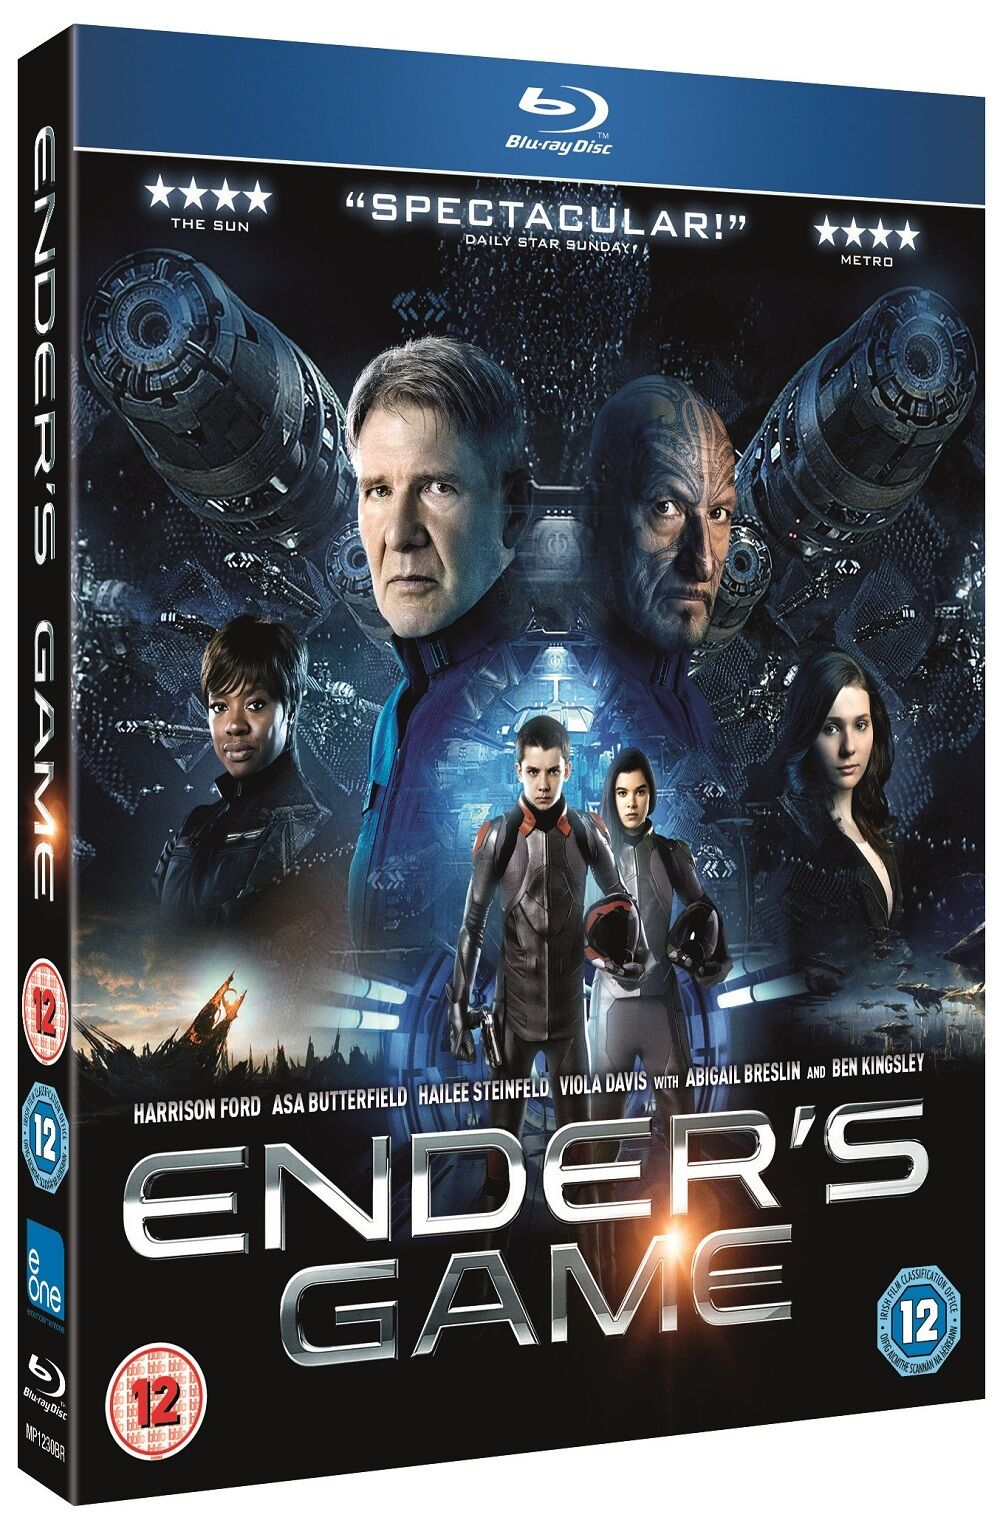 Ender's Game Blu Ray 5055744700162 | eBay